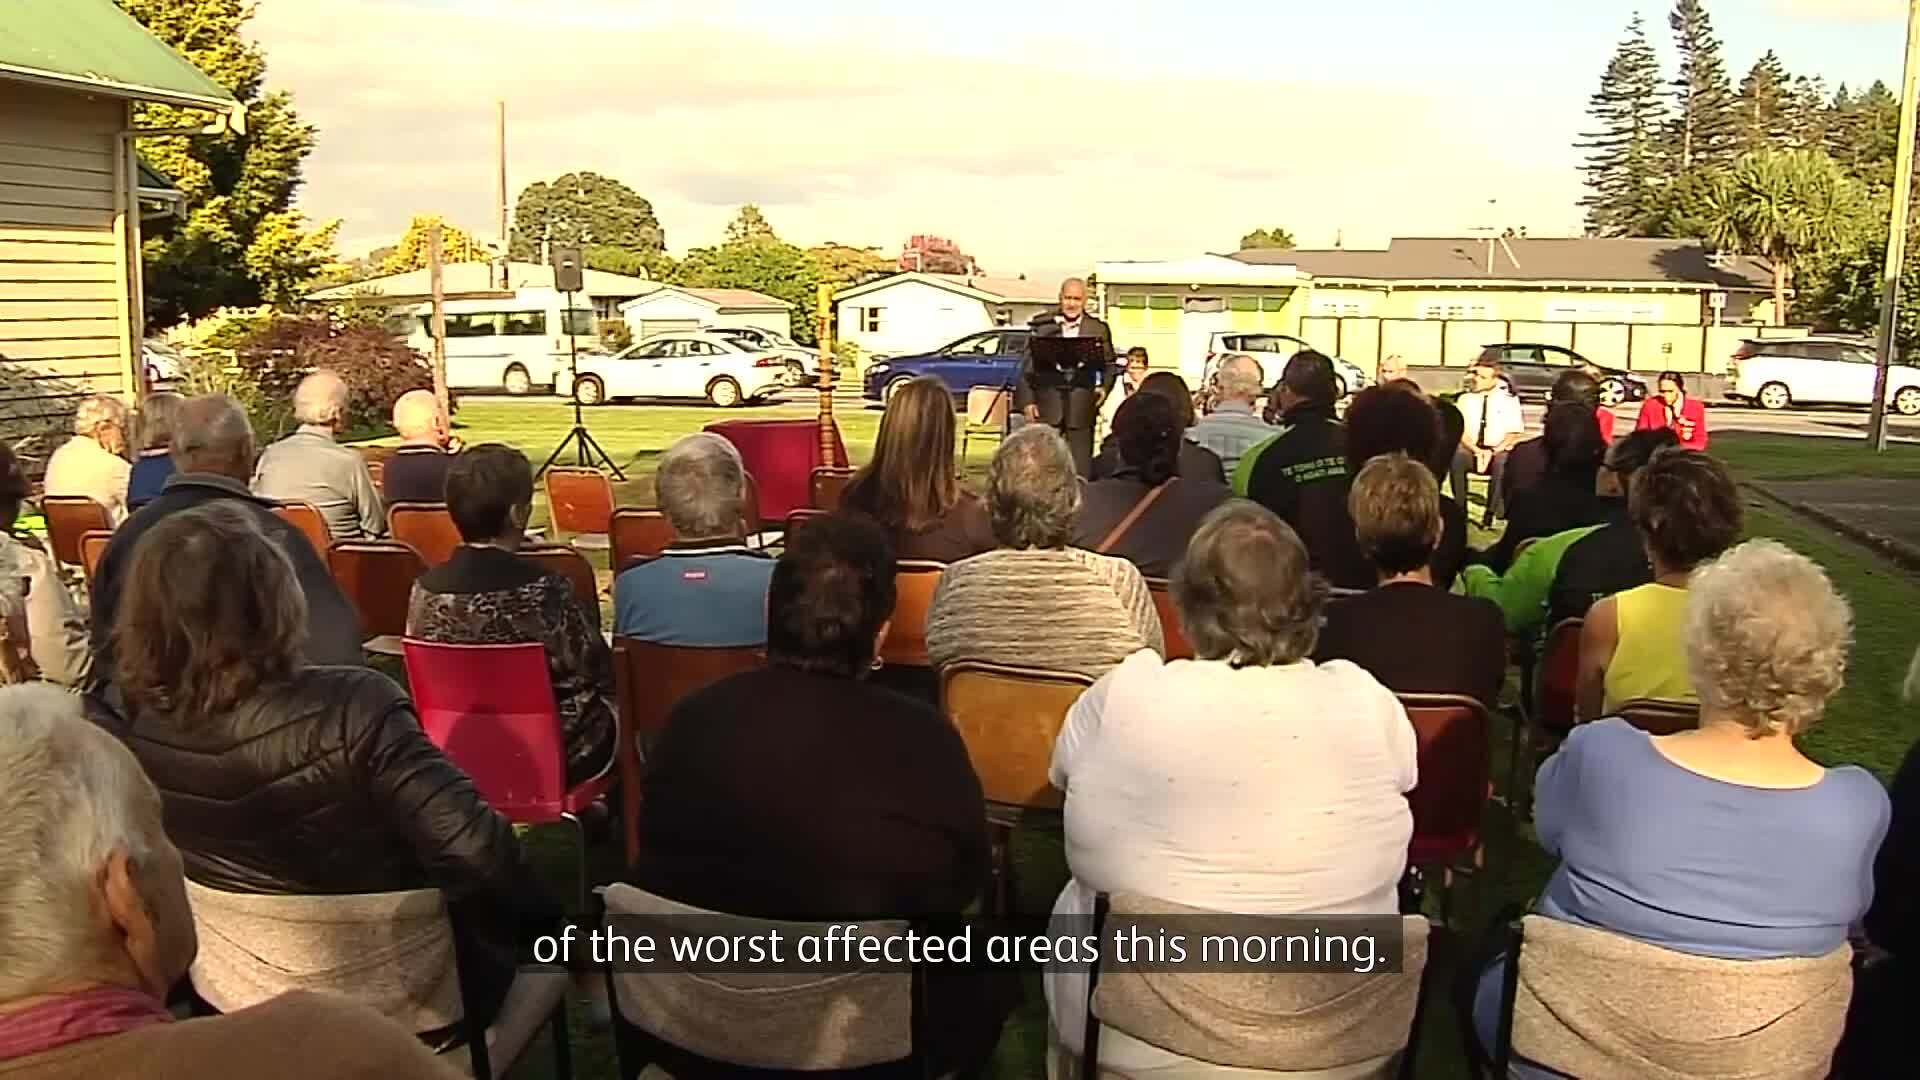 Video for The Edgecumbe floods: one year on